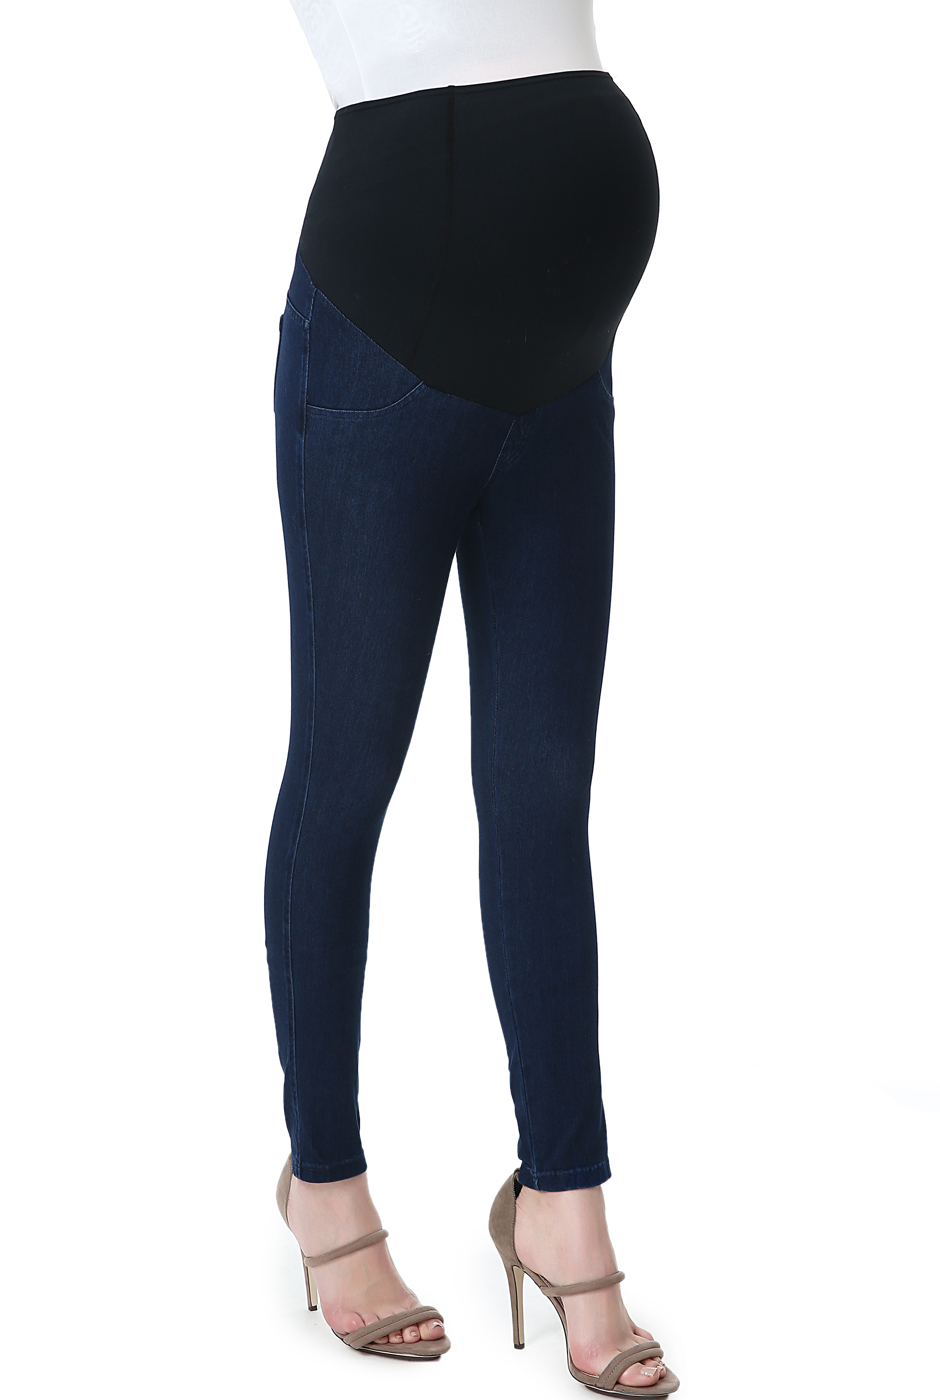 "Maternity Women's Jeggings (26"" Inseam) - Denim Jeans Blue XL"